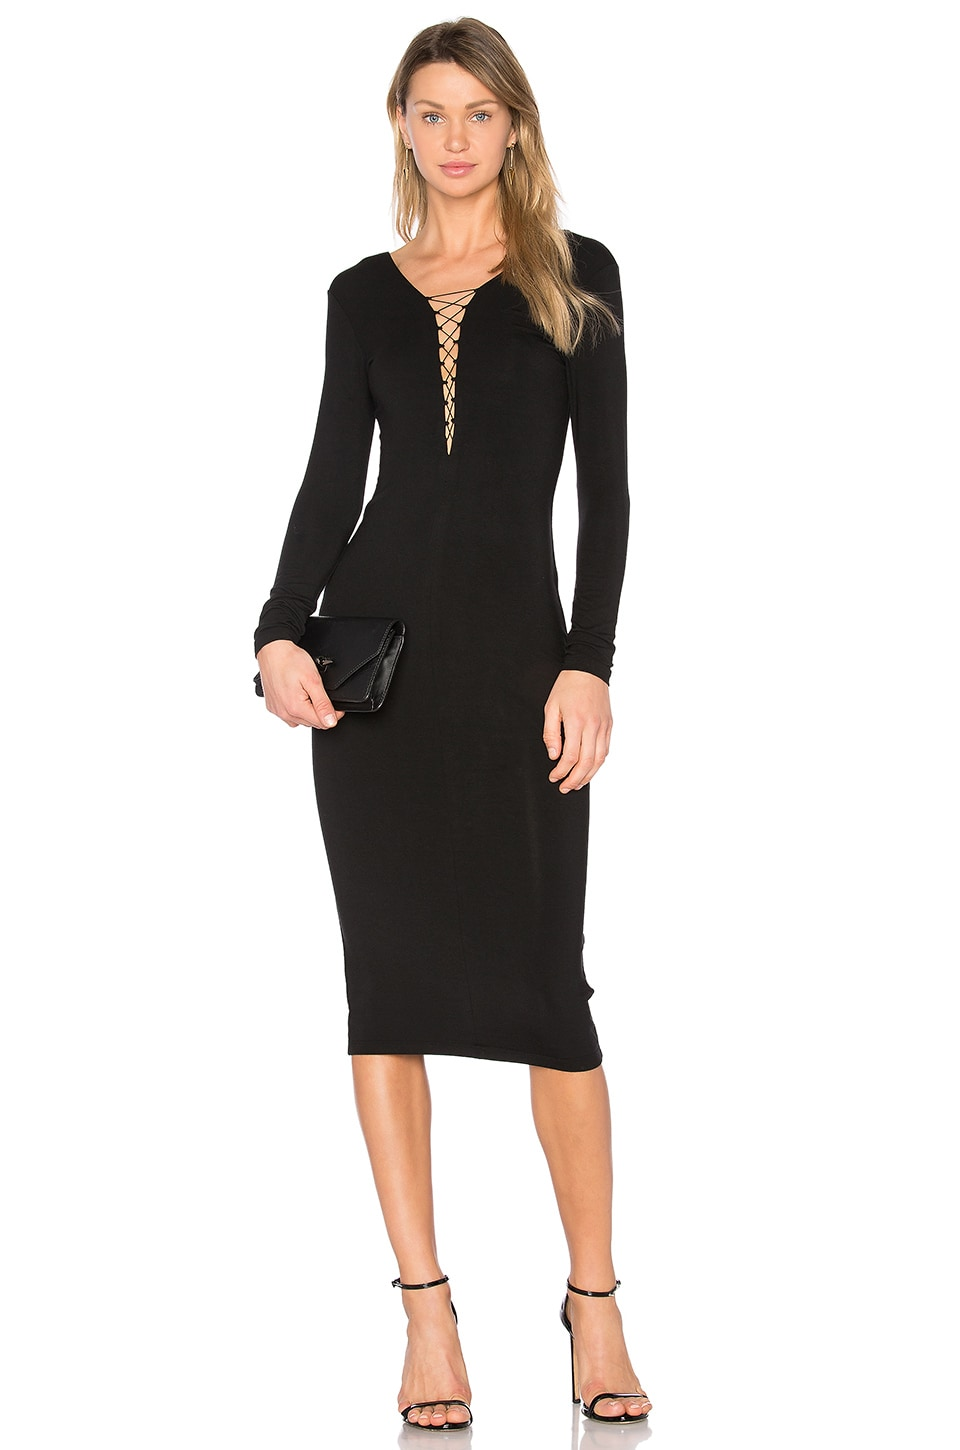 T by Alexander Wang Lace Up Midi Dress in Black